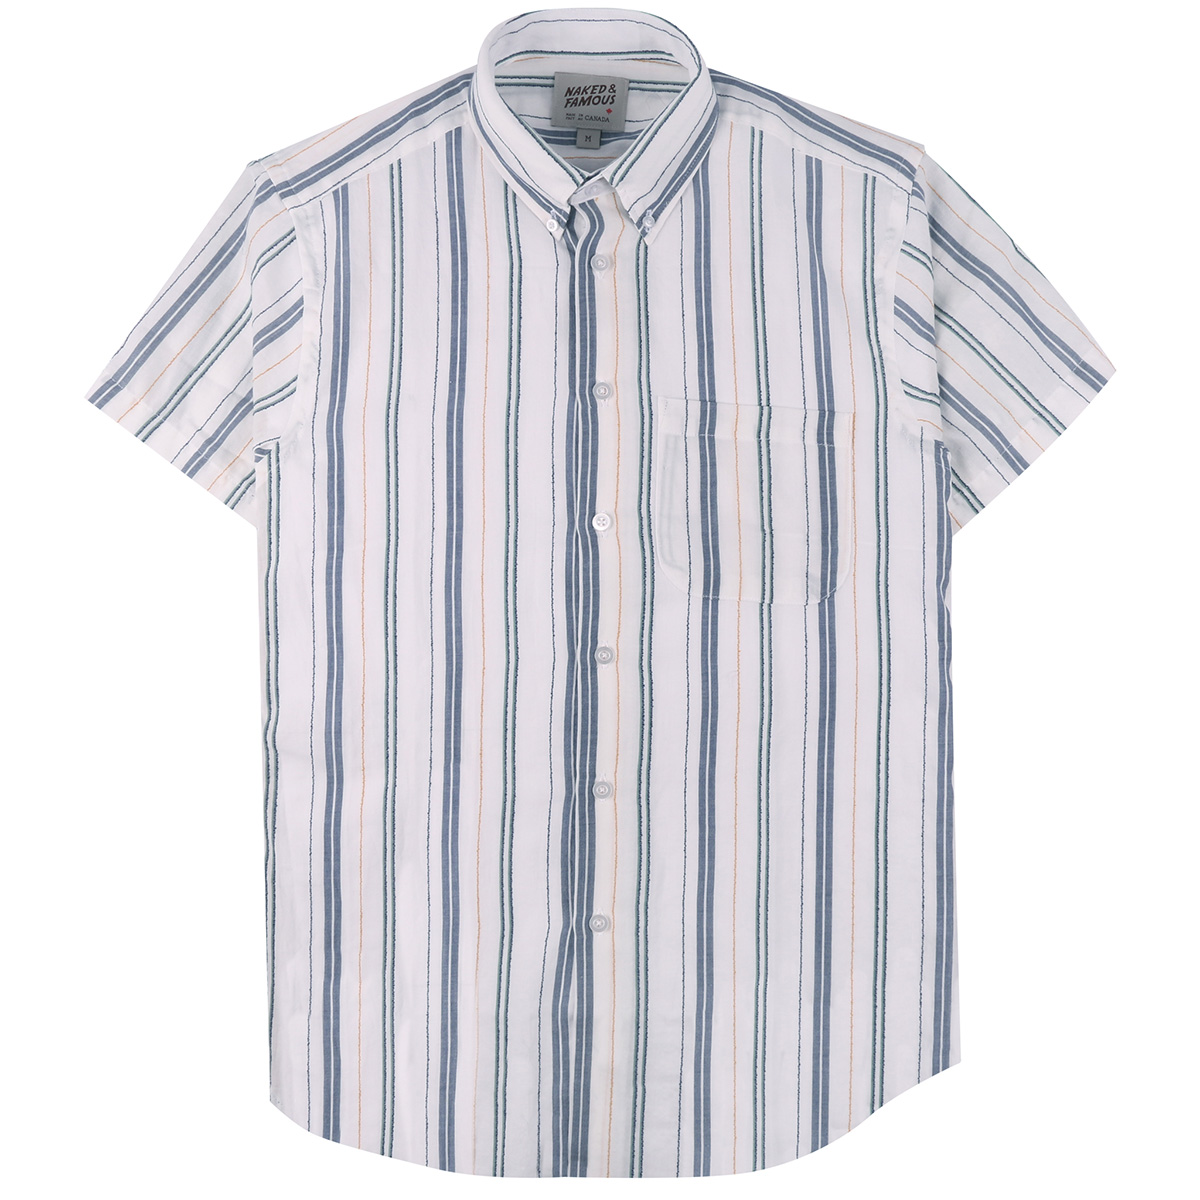 BOUCLÉ STRIPE - WHITE - Short Sleeve Easy Shirt